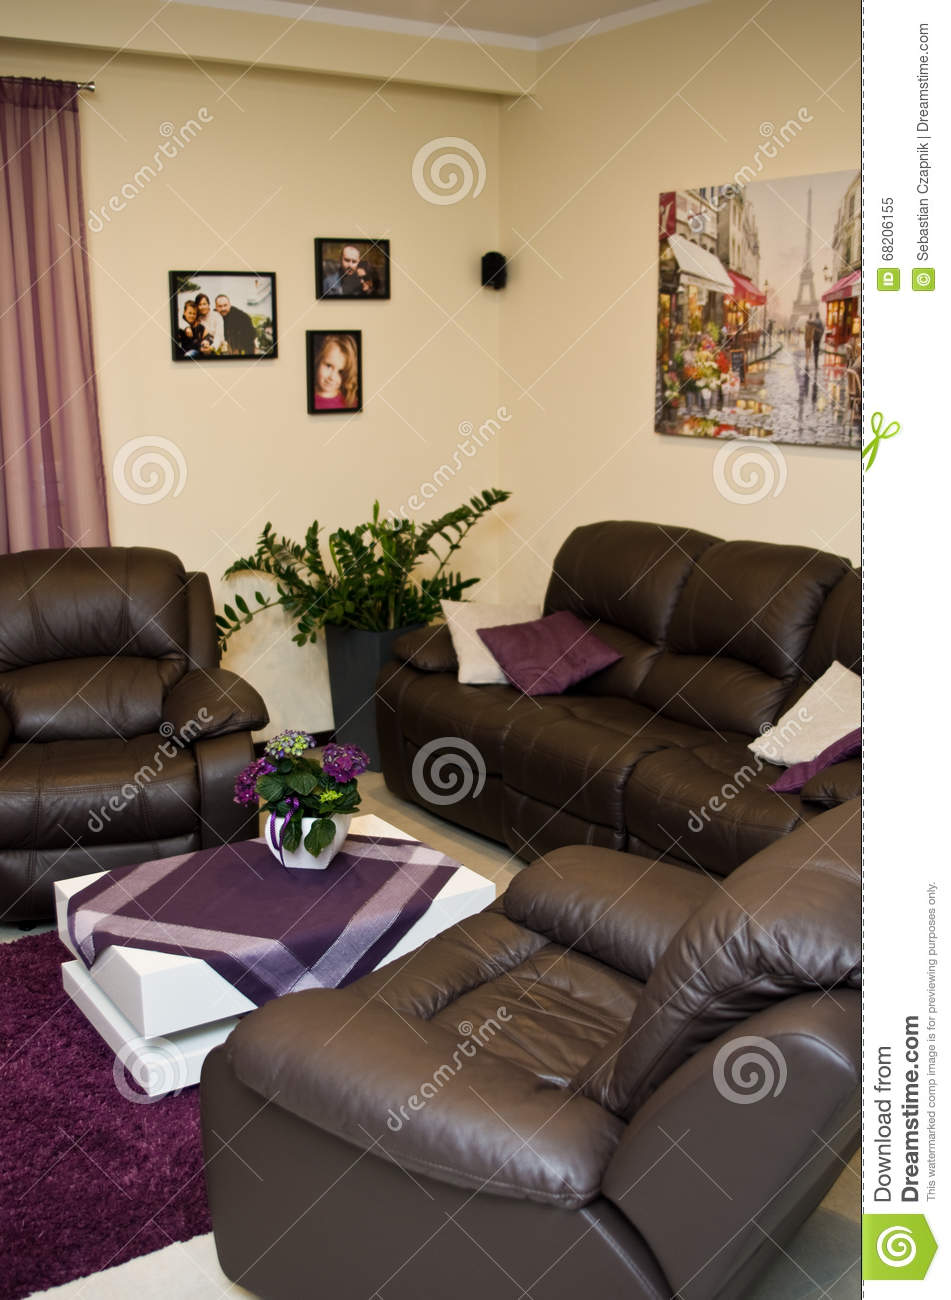 Leather sofa and chairs in a living room